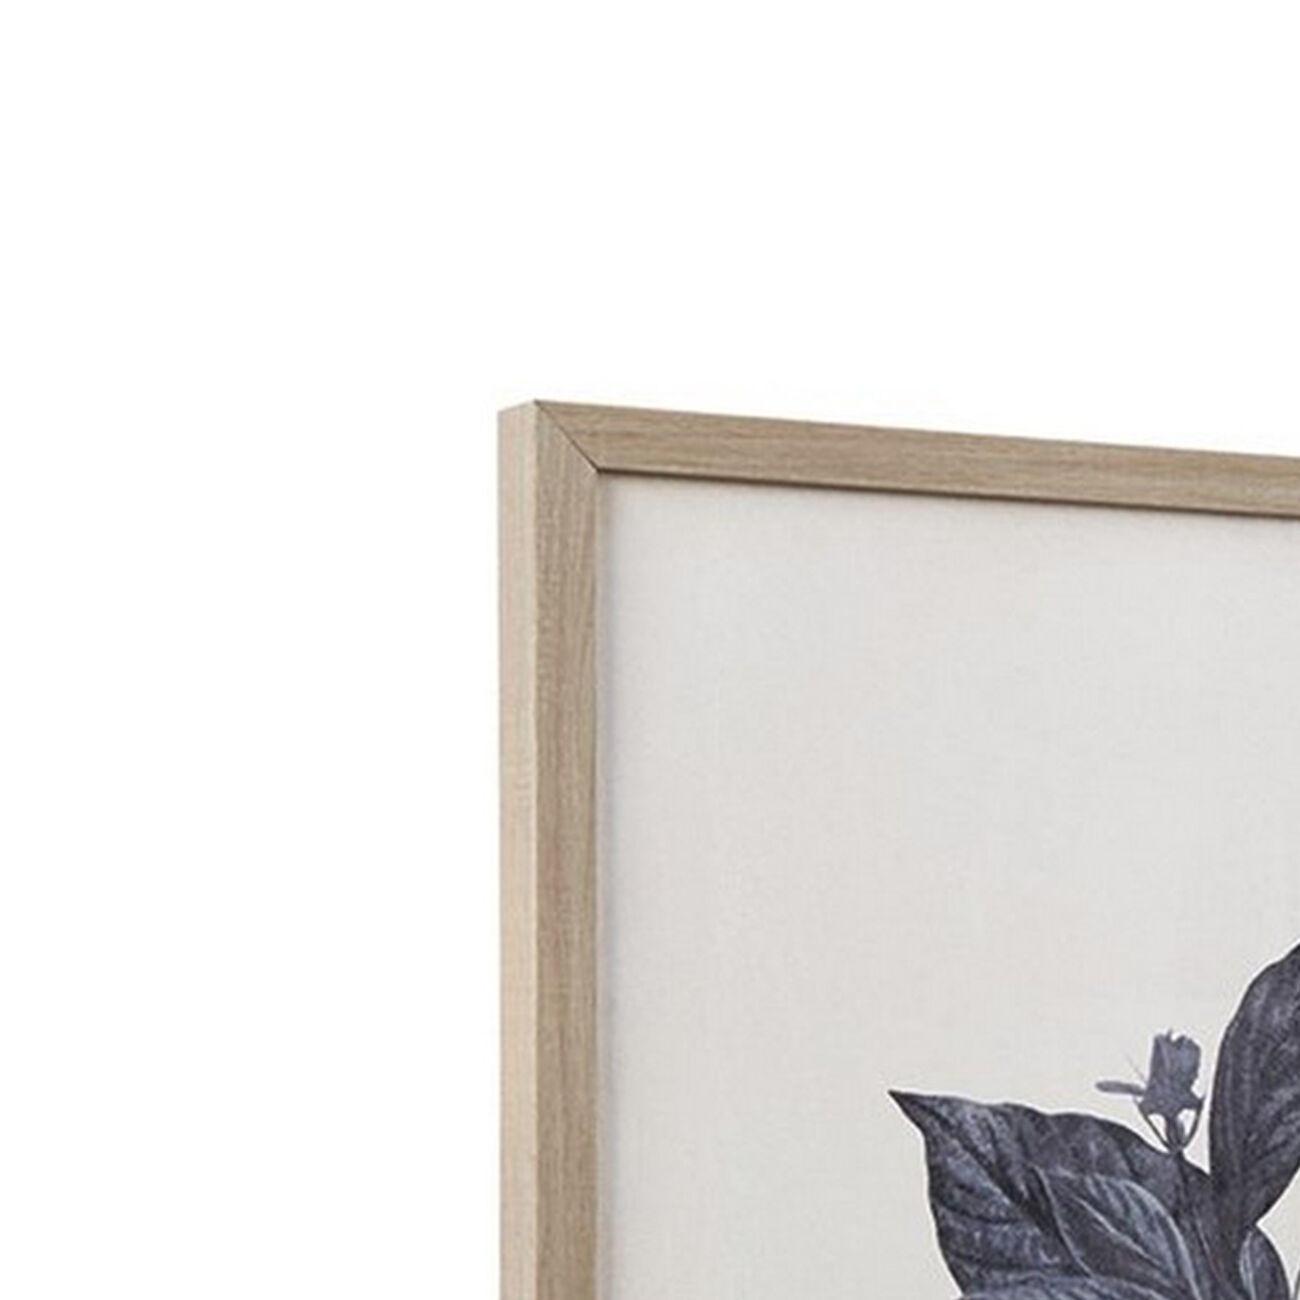 Wooden Wall Art with Painted Botanical Flowers, Set of 2, Brown and Blue